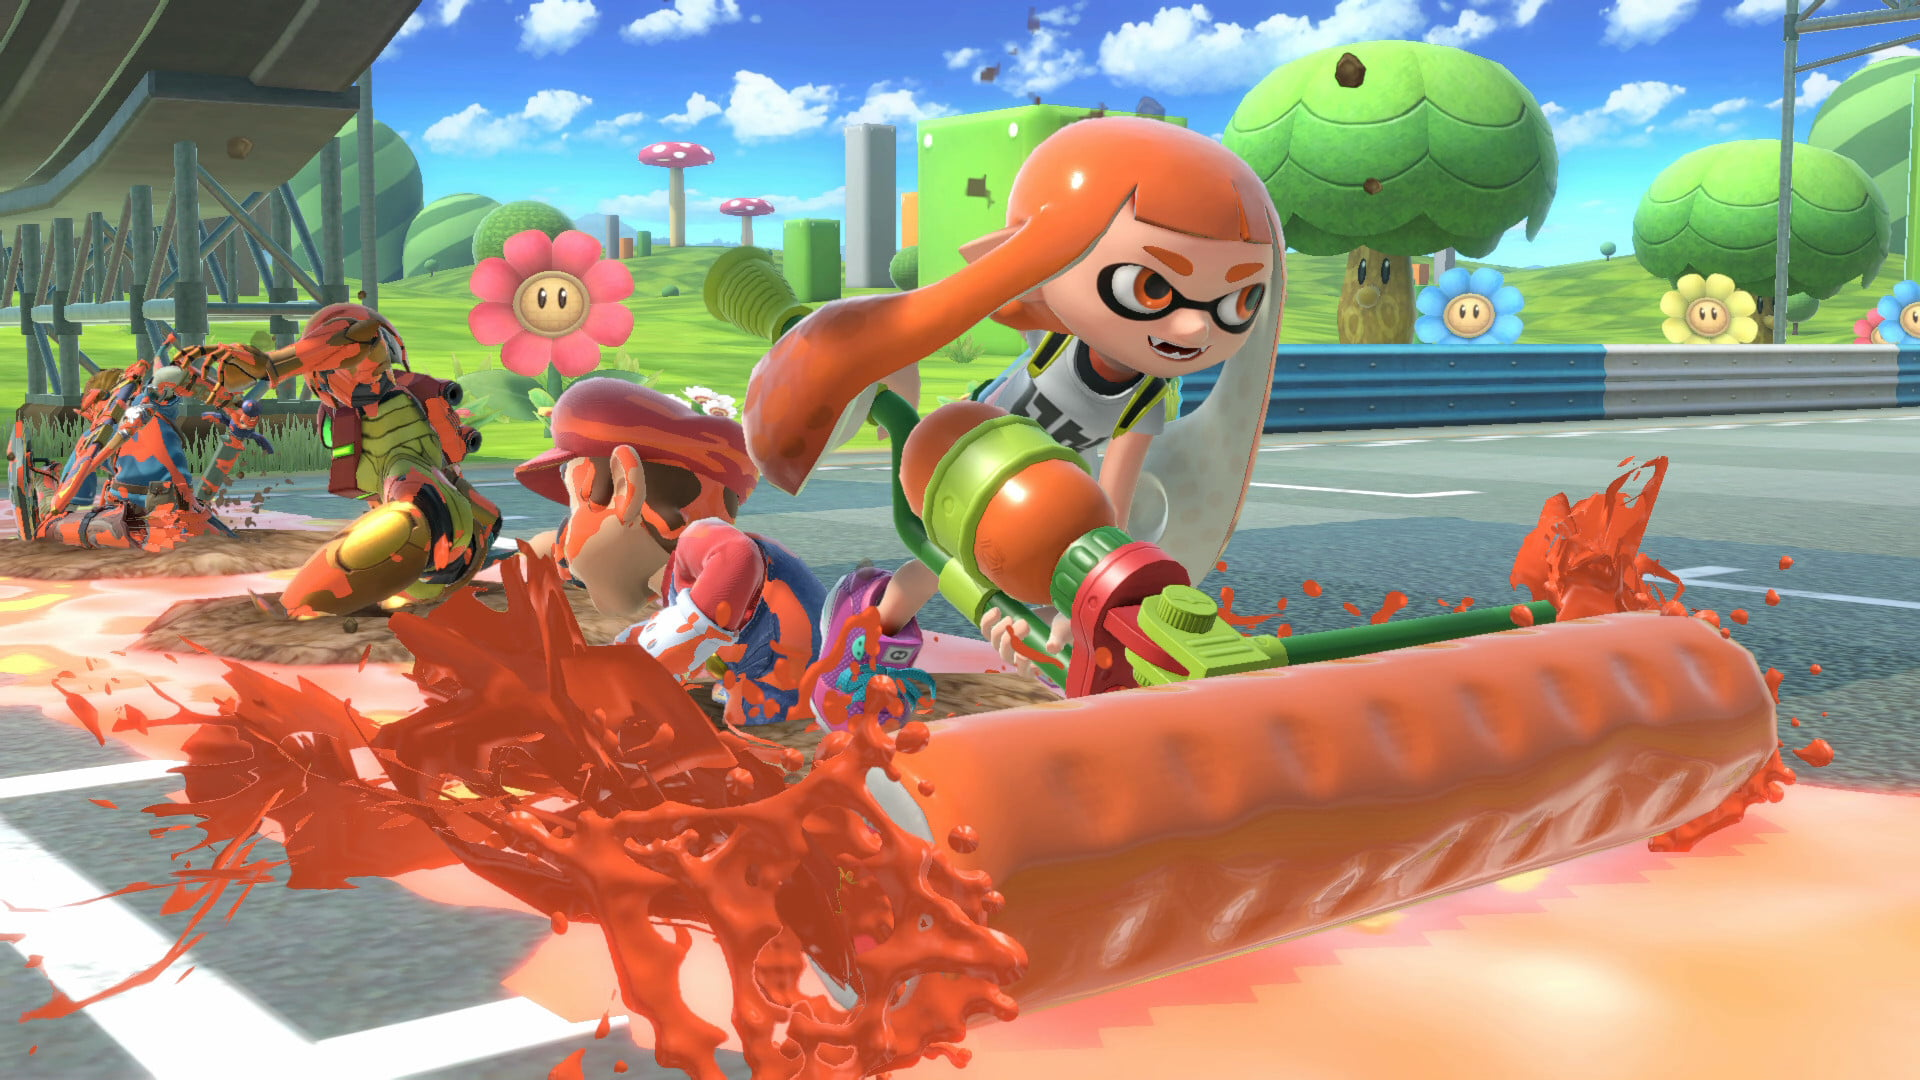 Read the latest Super Smash Bros Ultimate Patch Notes here